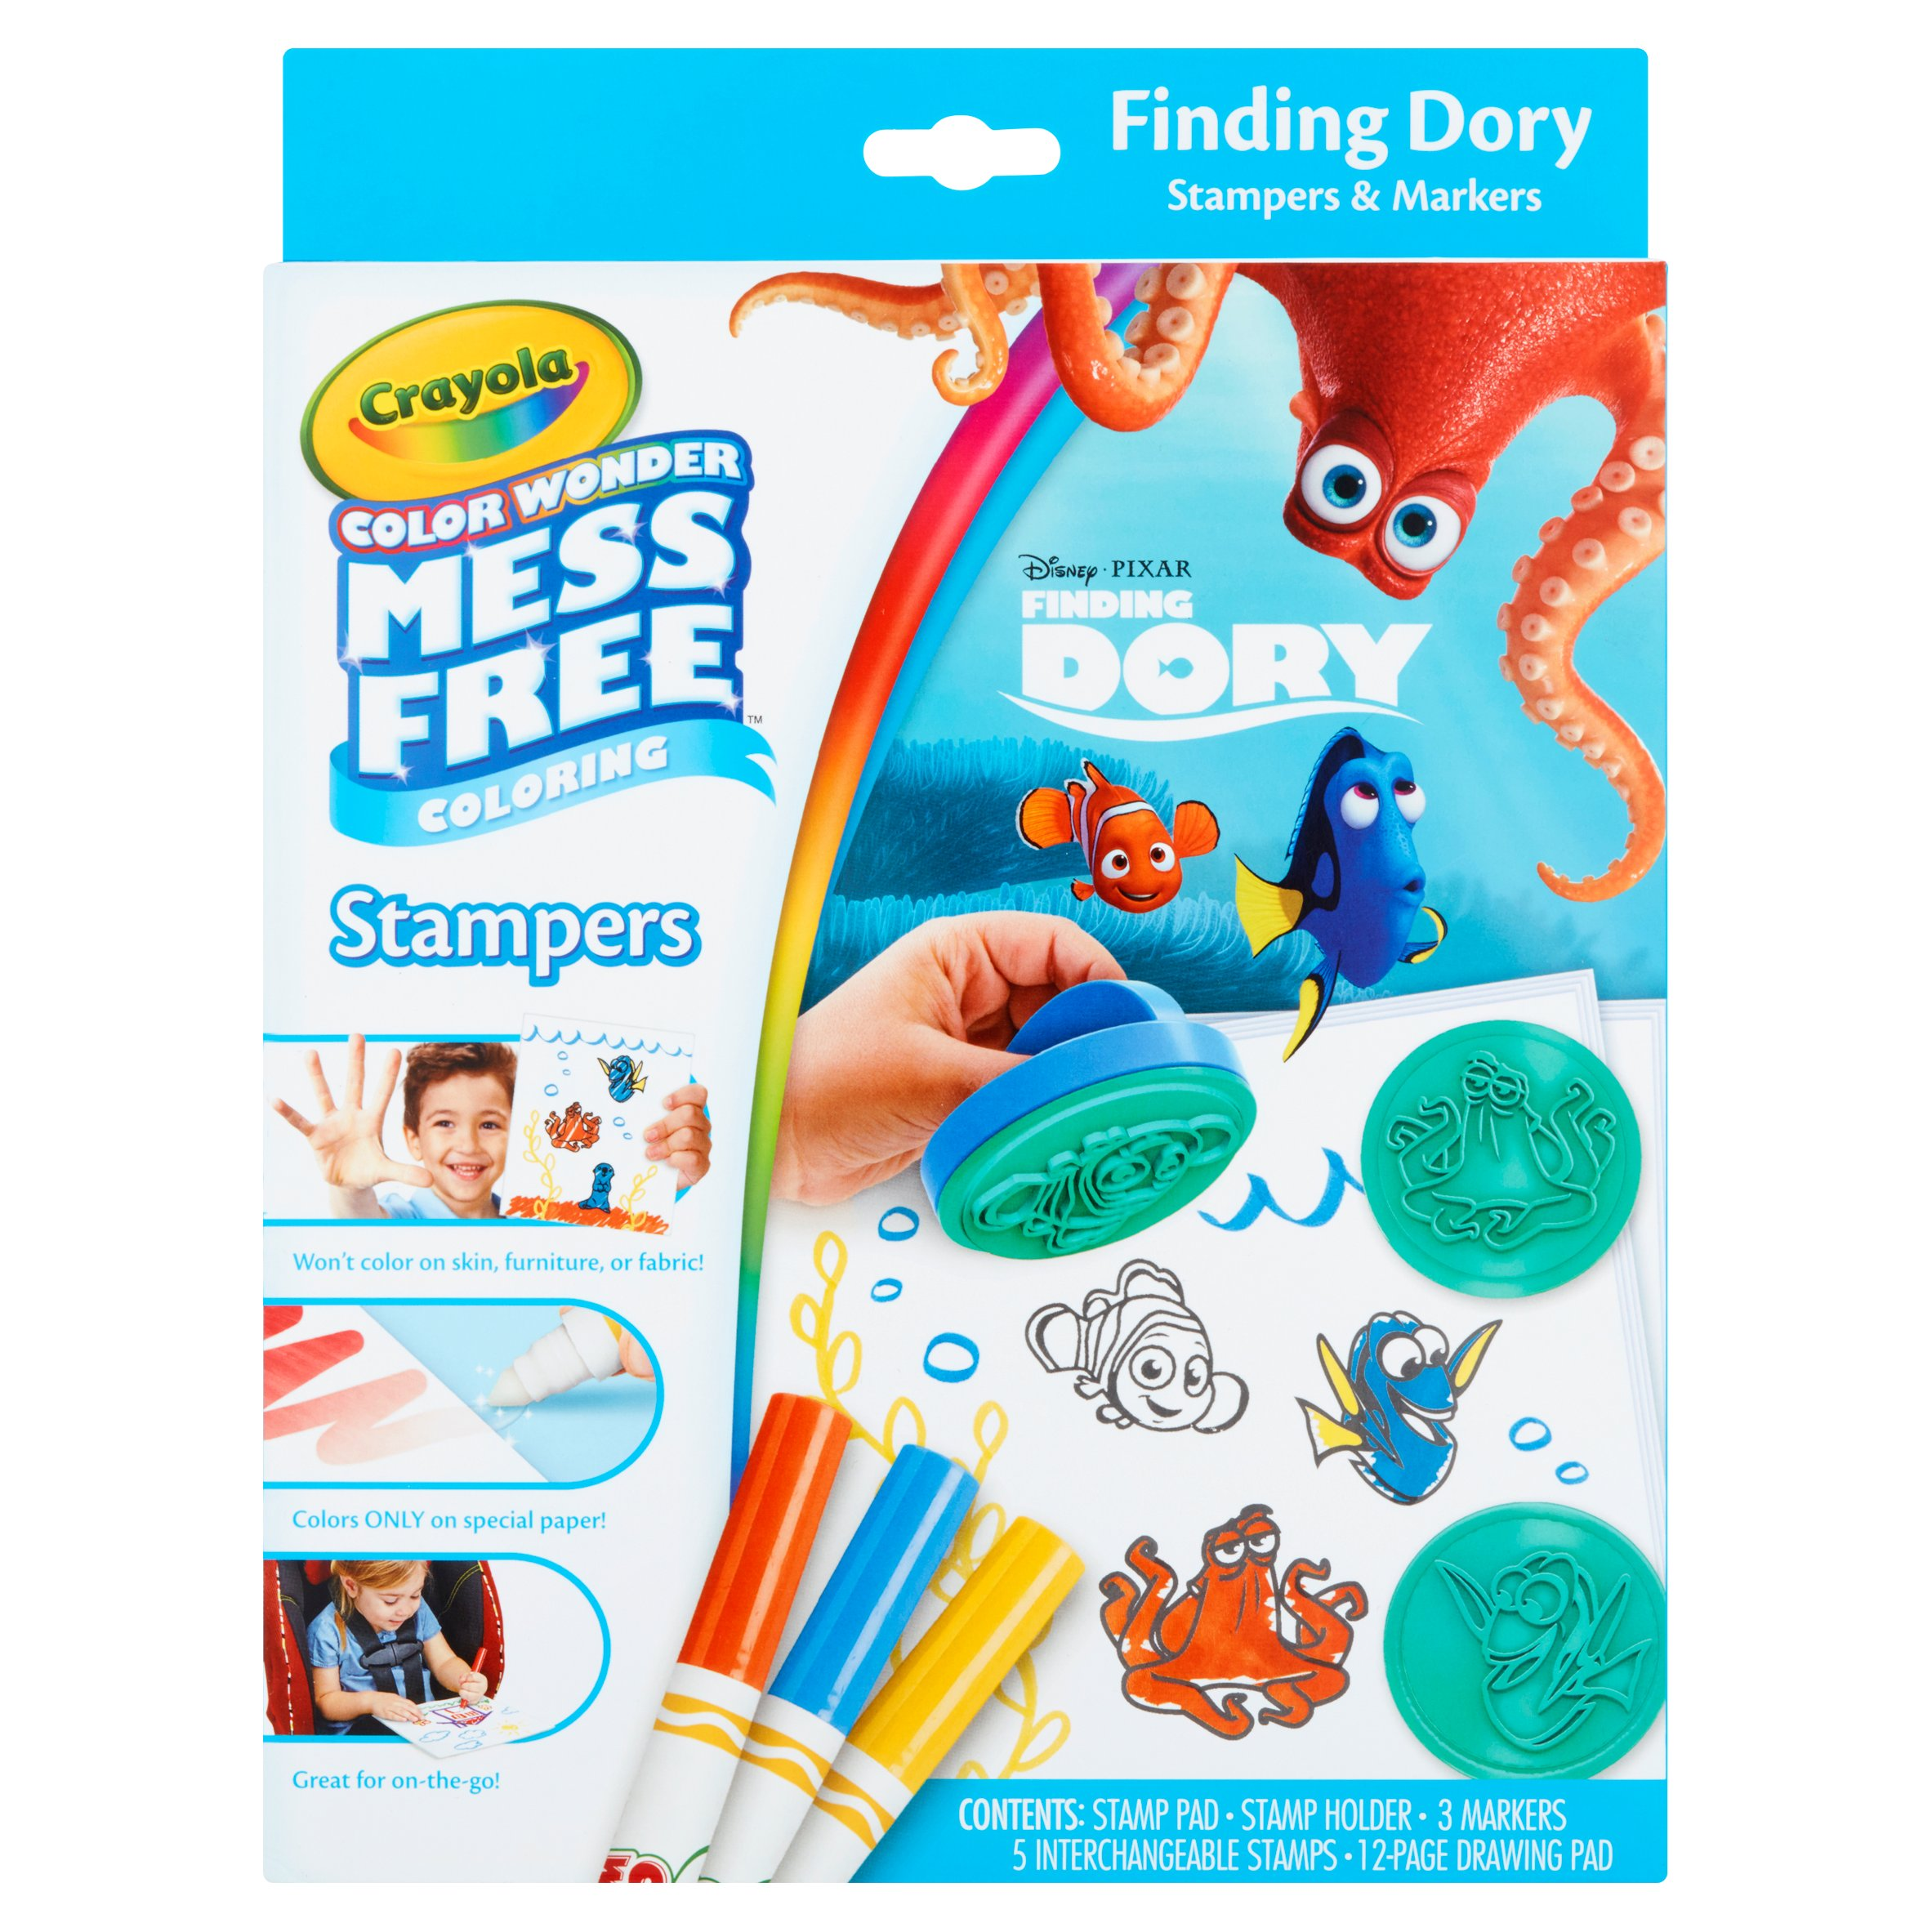 Crayola Disney Finding Dory Stampers & Markers by Crayola